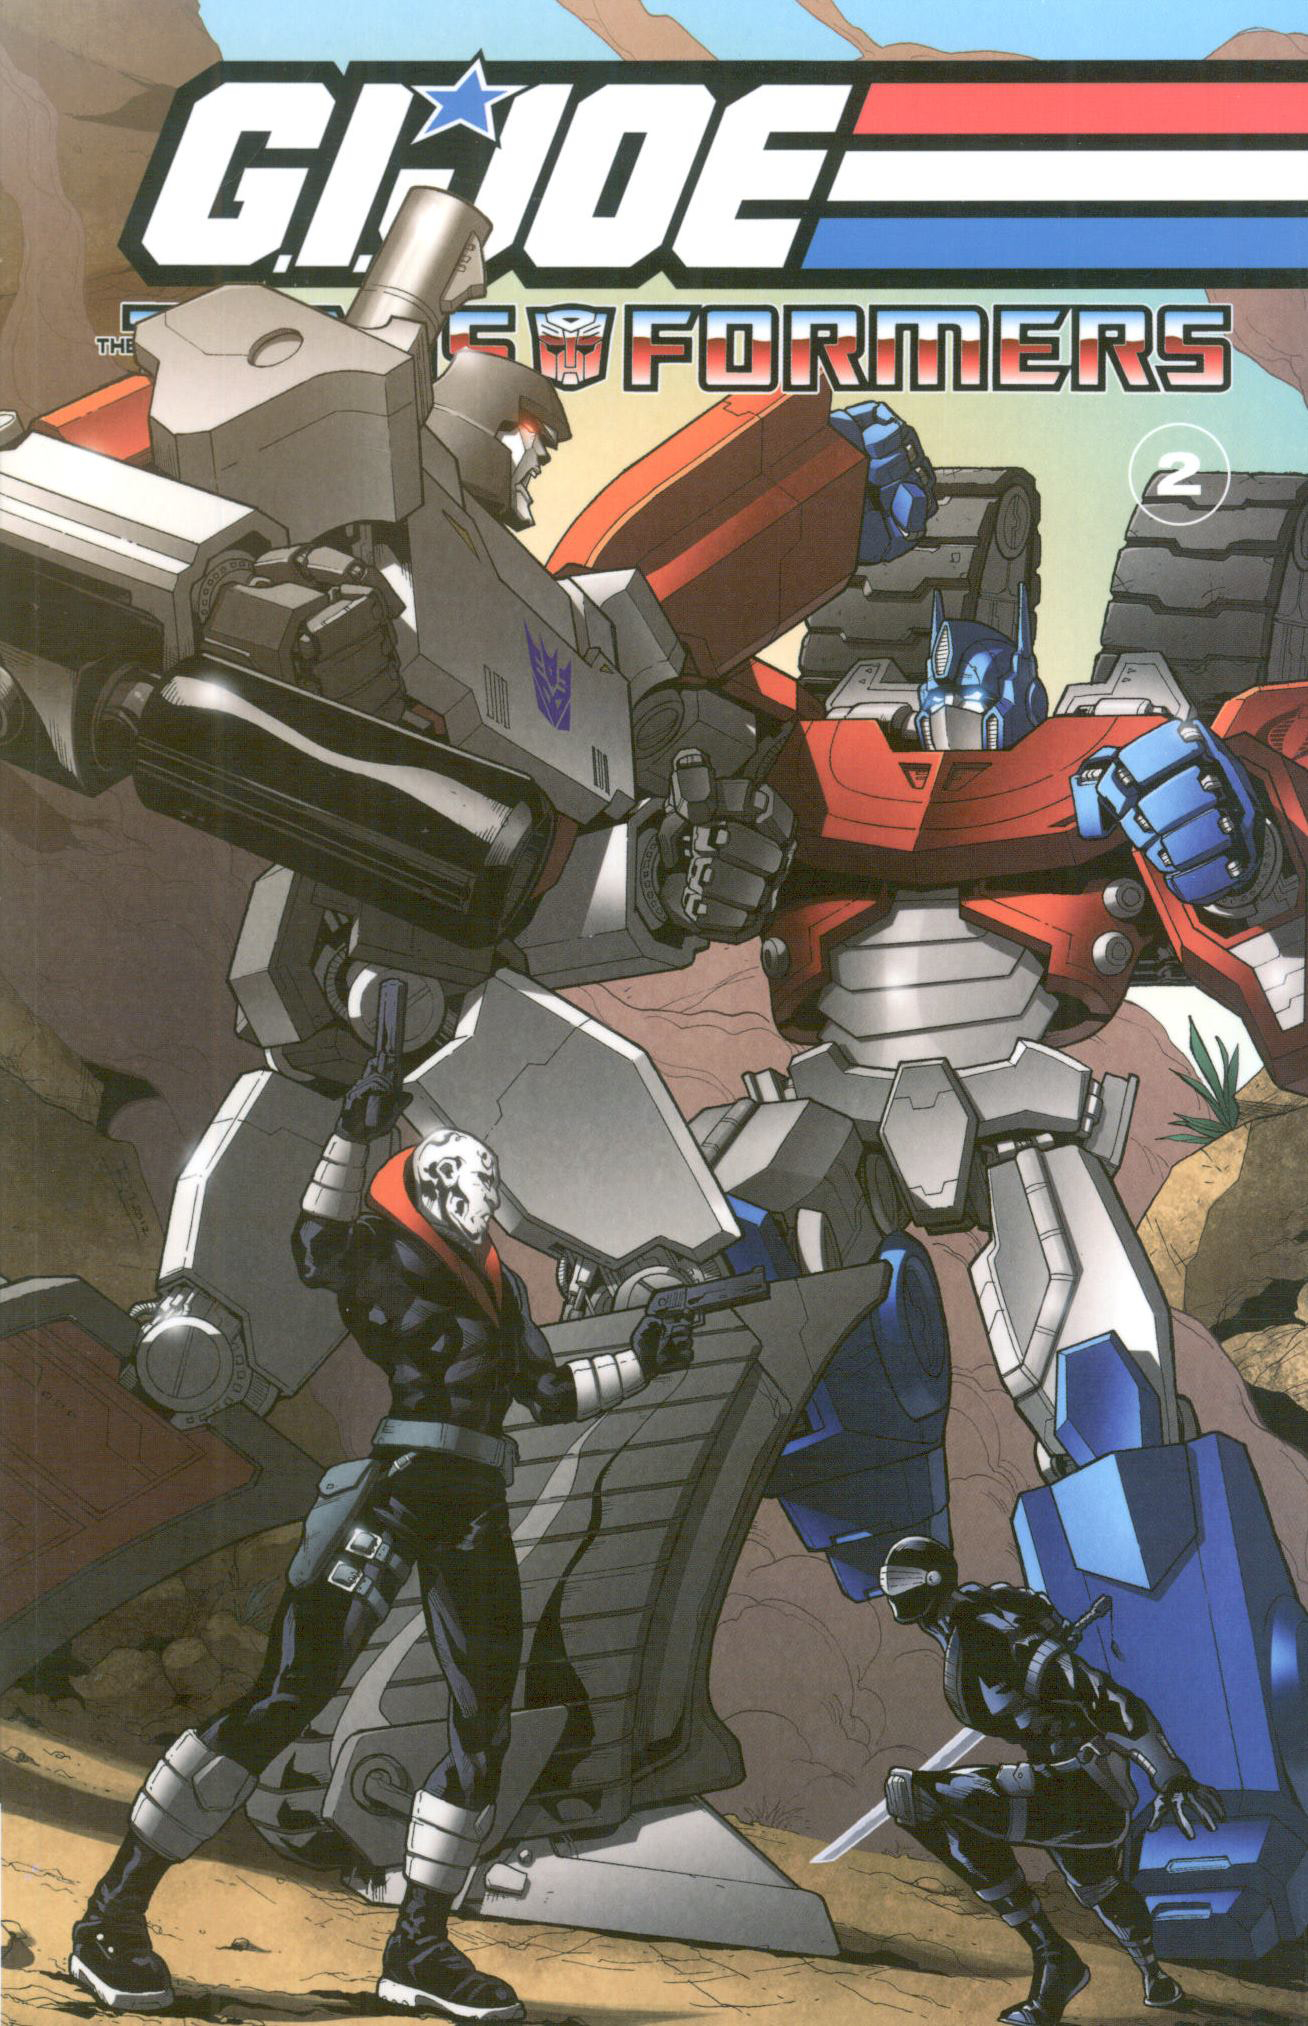 GI JOE / TRANSFORMERS TP VOL 02